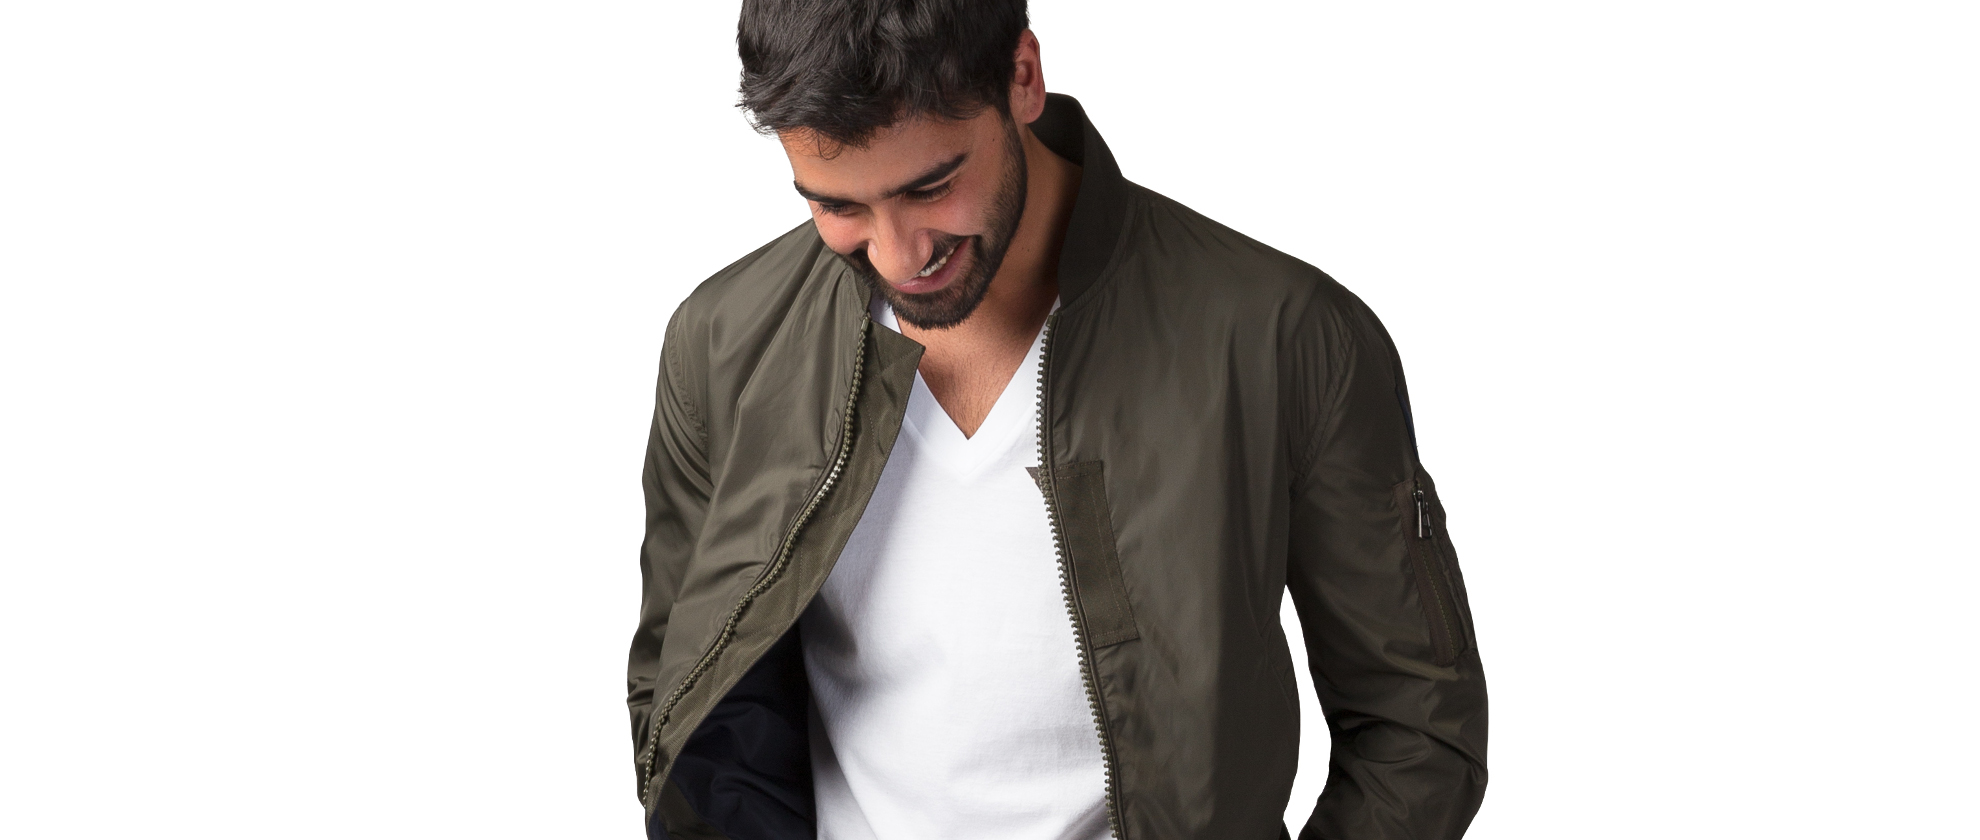 Style Guide: Men's Jackets Fit for Spring